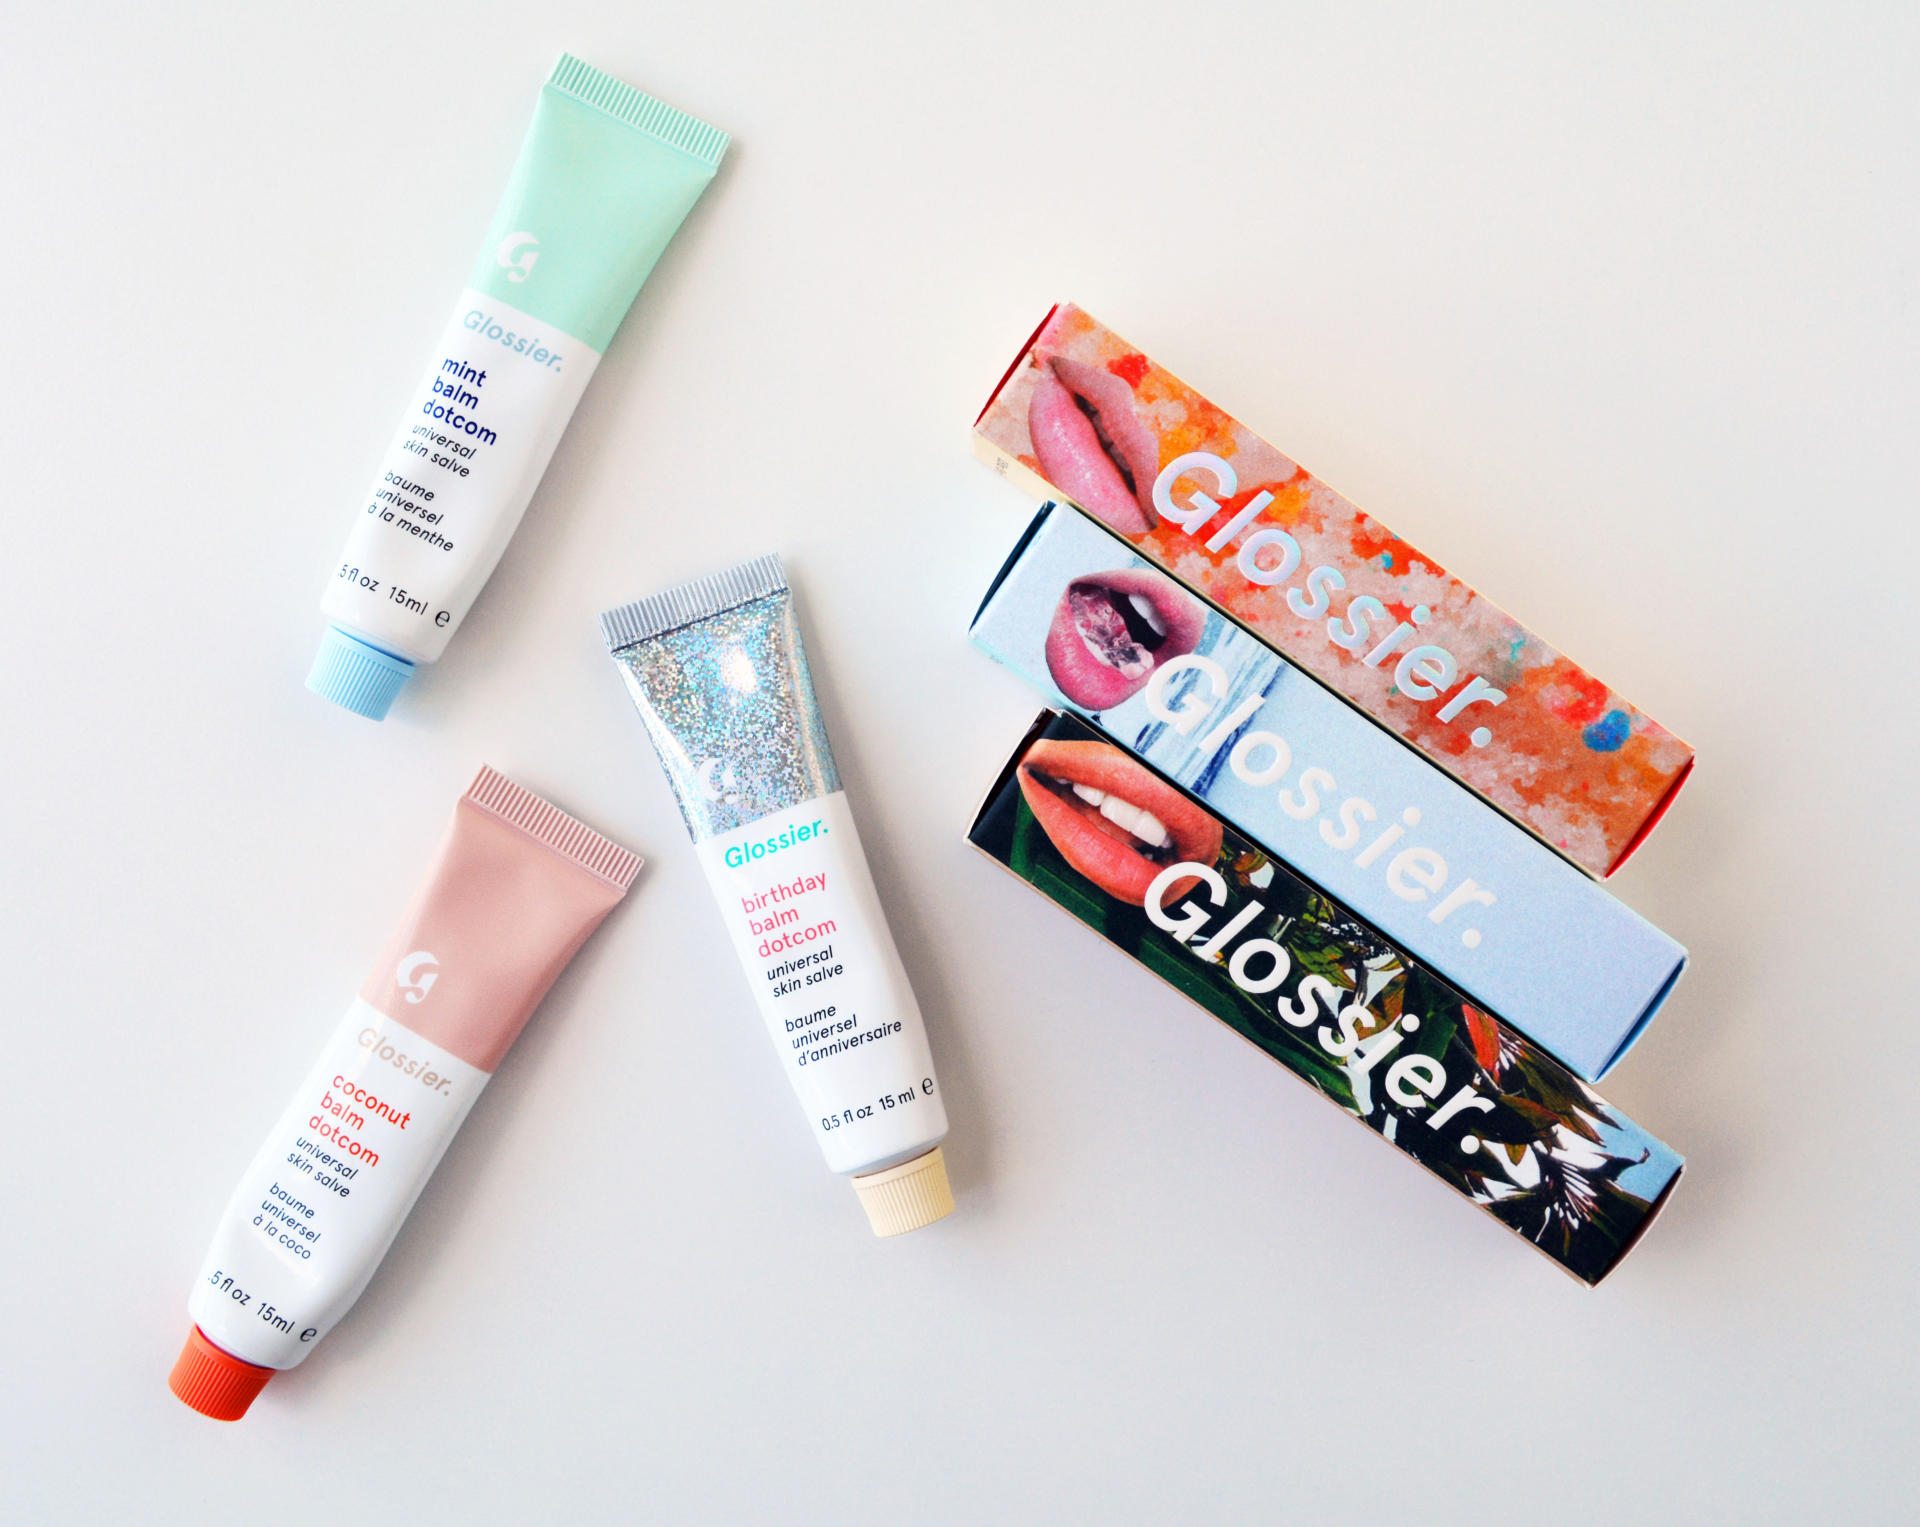 Glossier Haul Review